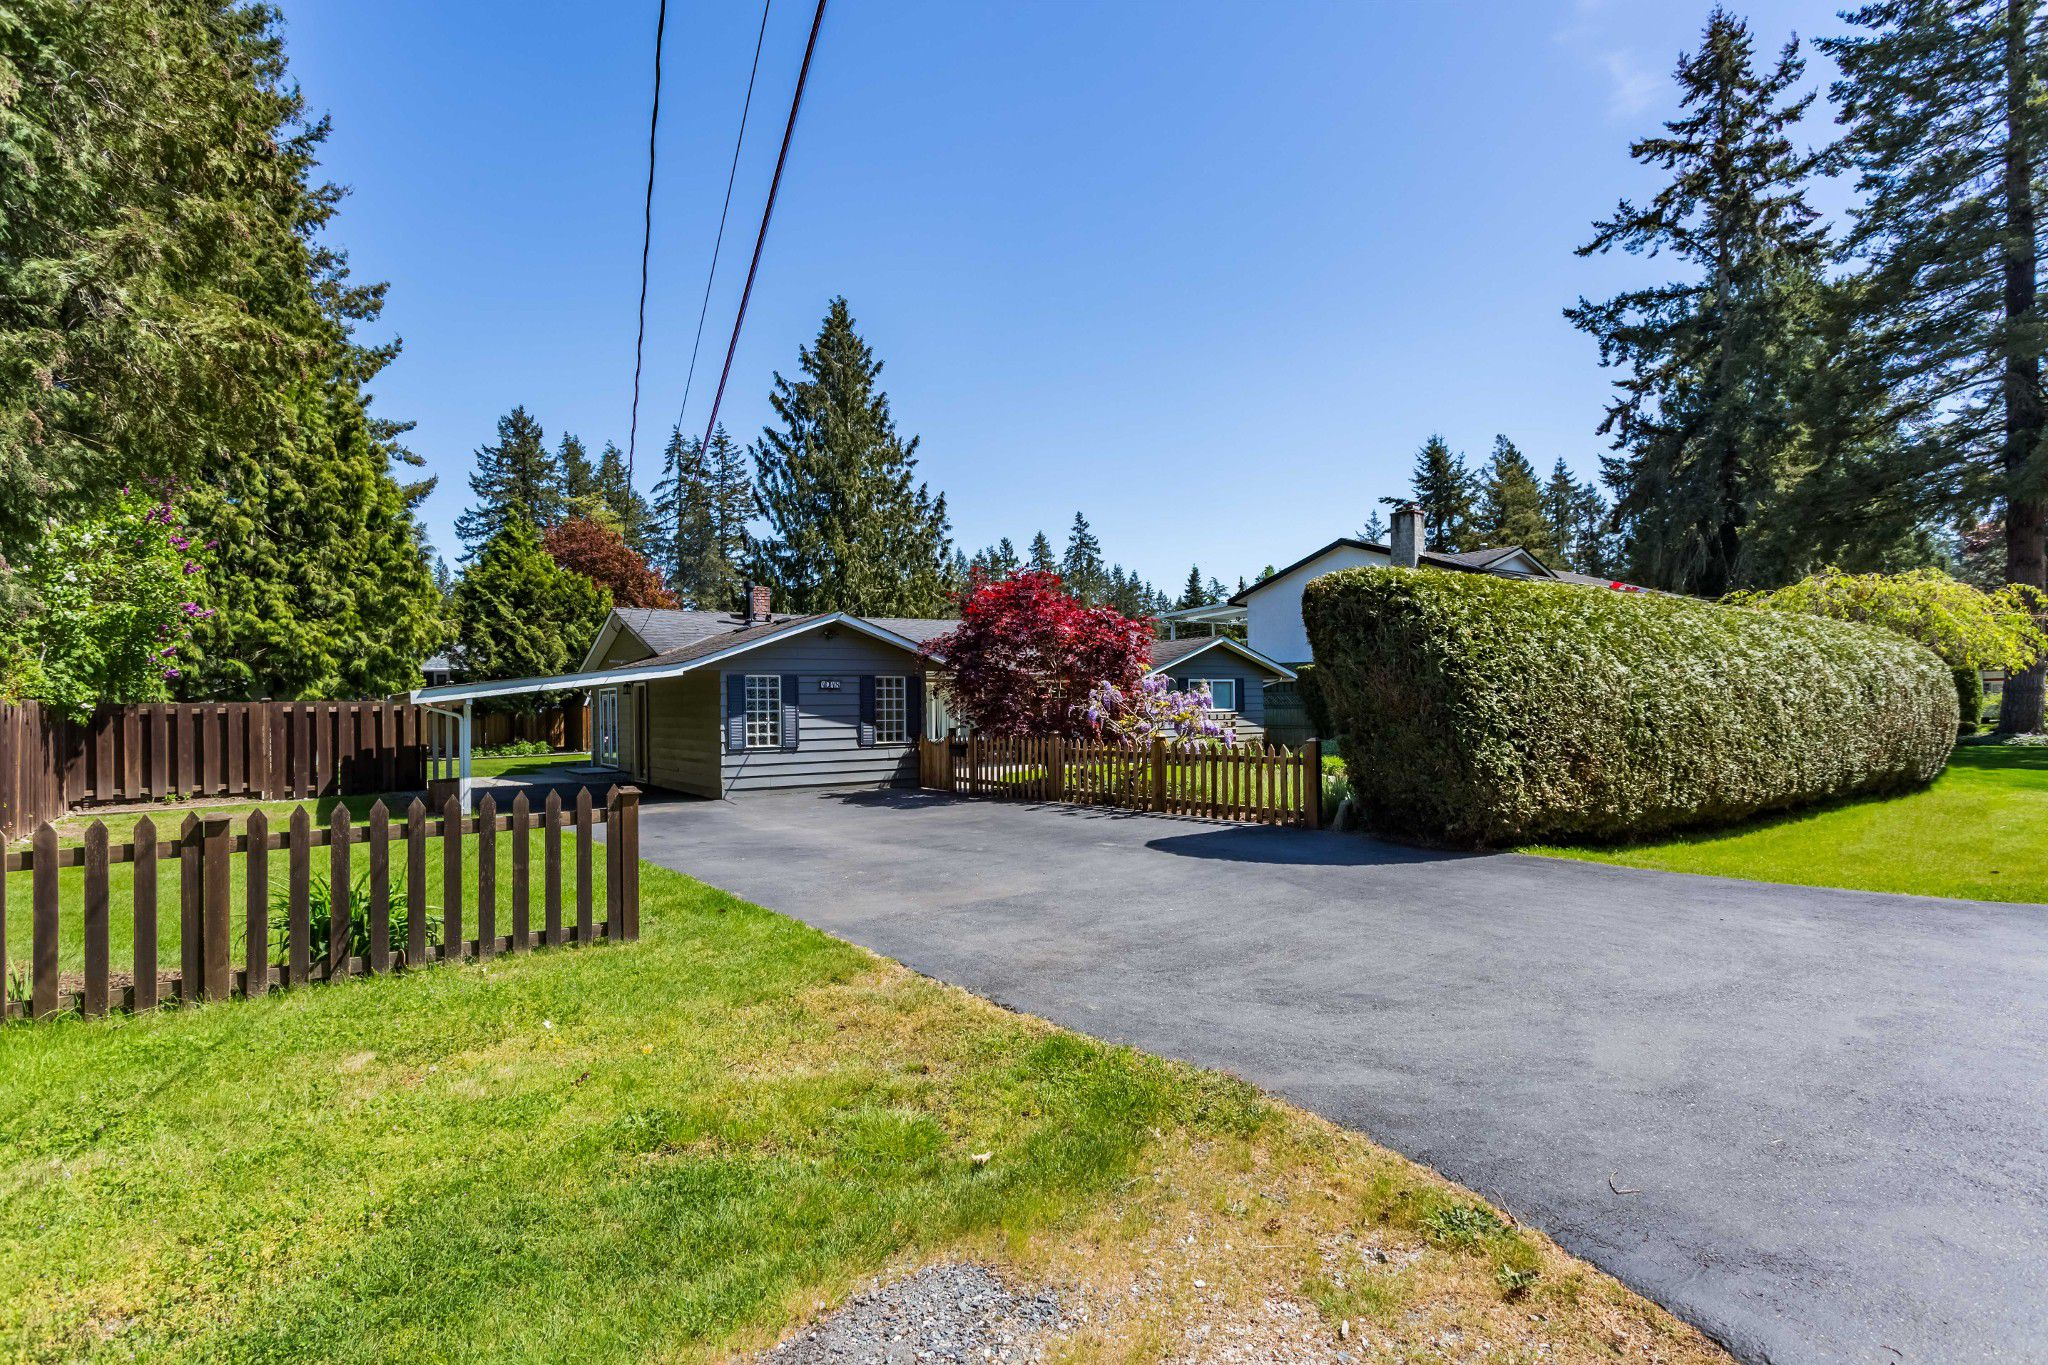 """Main Photo: 4048 207 Street in Langley: Brookswood Langley House for sale in """"Brookswood"""" : MLS®# R2349070"""